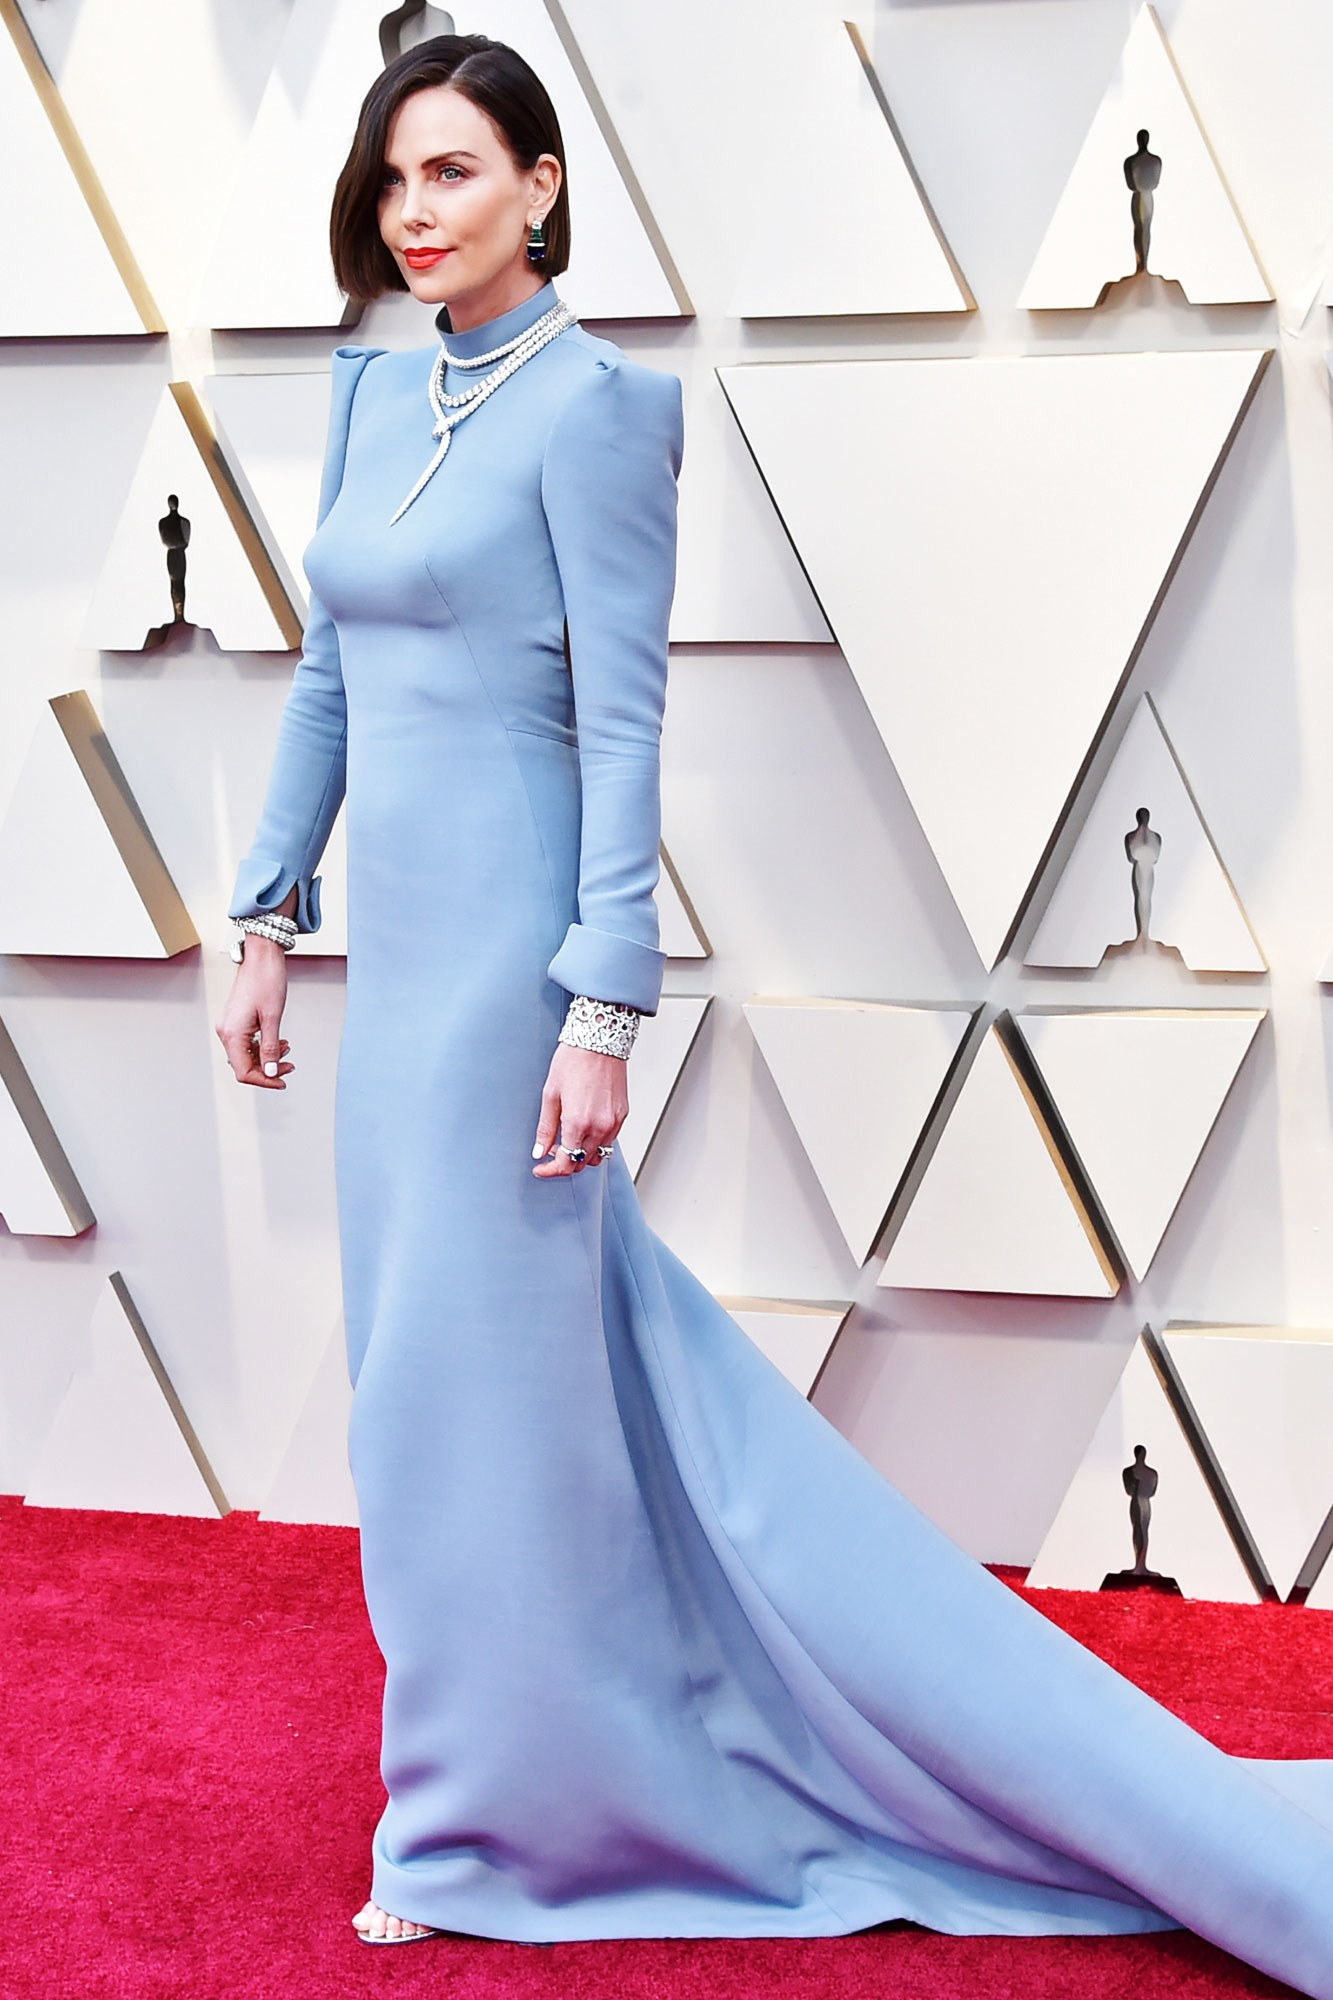 CHARLIZE THERON - DIOR HAUTE COUTURE: This colour stood out and the tailoring is impeccable.